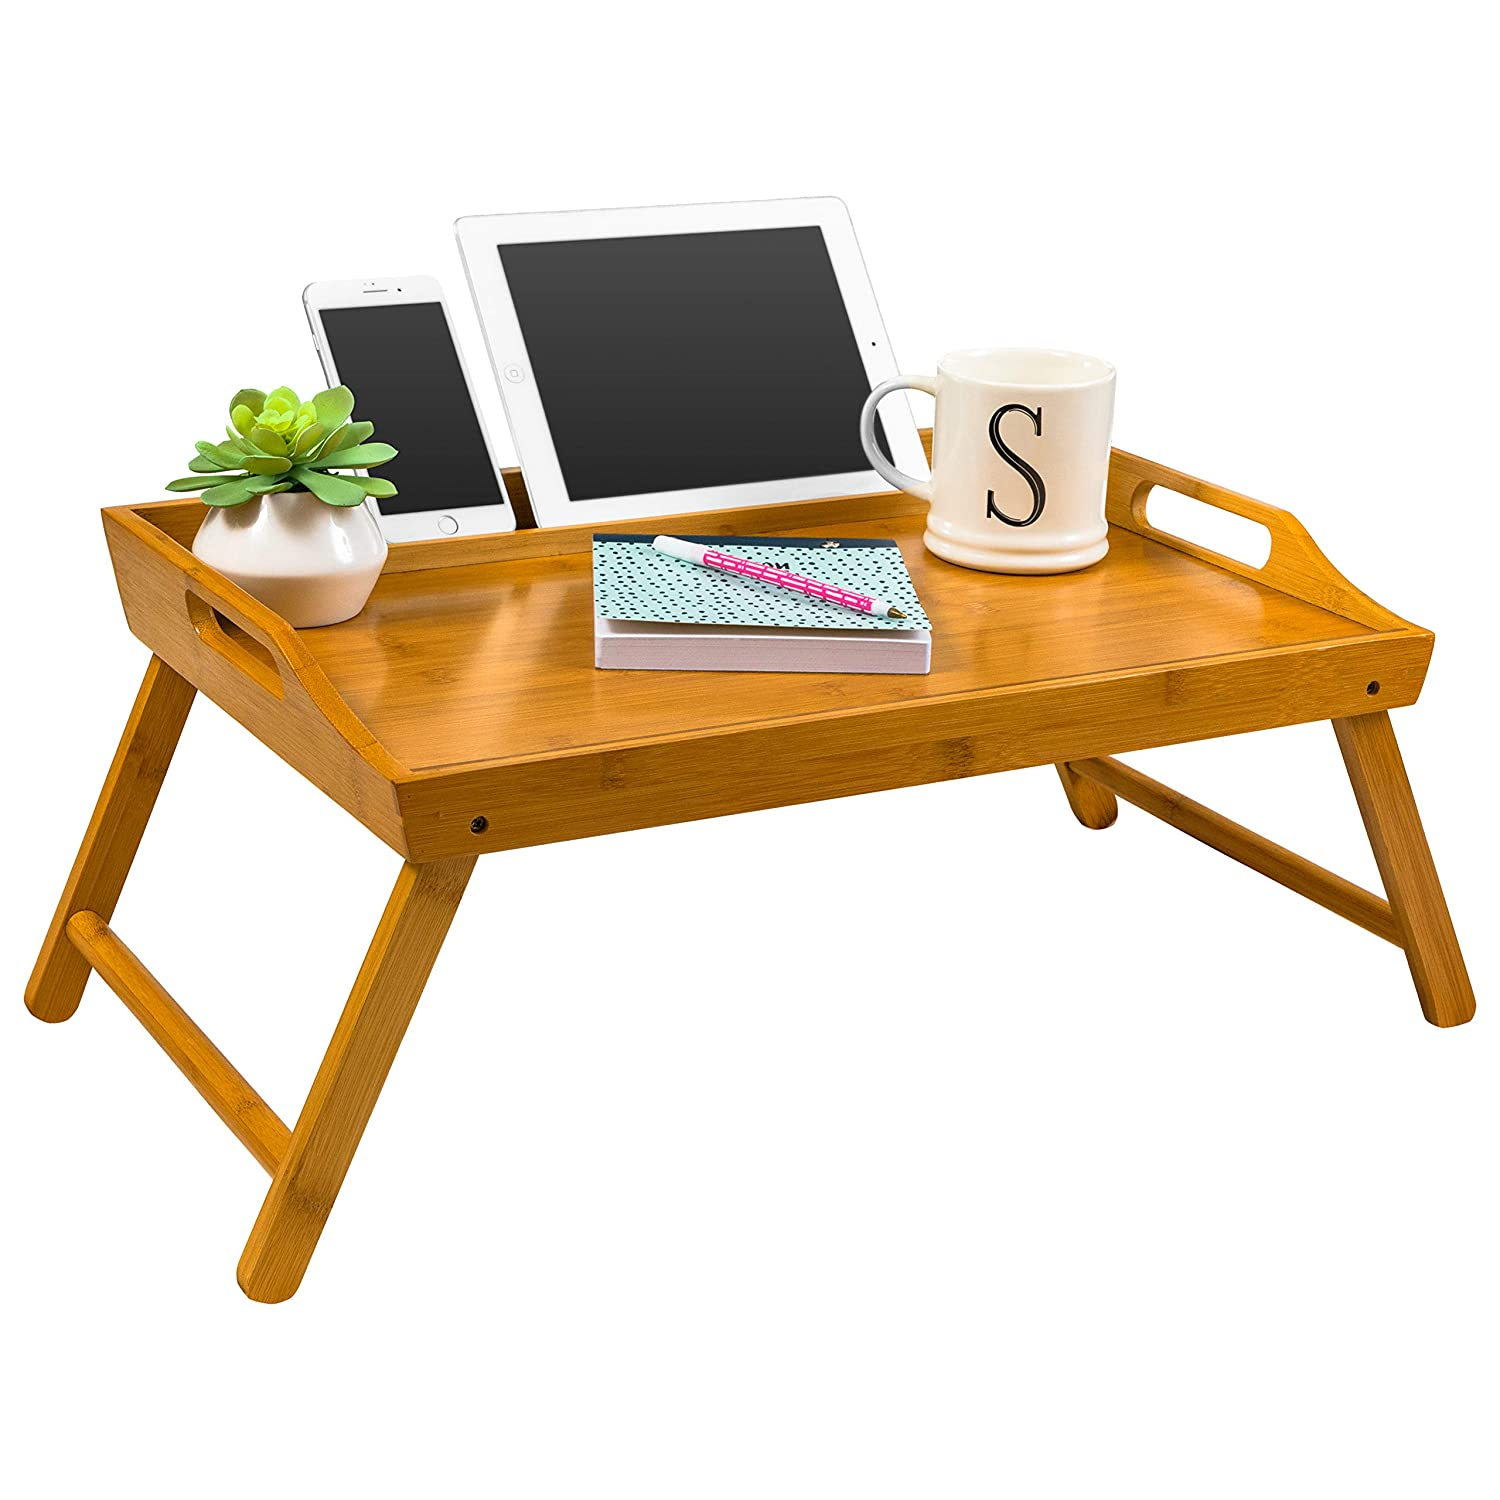 "LapGear Media Bed Tray/Breakfast Table/Lap Desk - Natural Bamboo (Fits up to 17"" Laptop)"